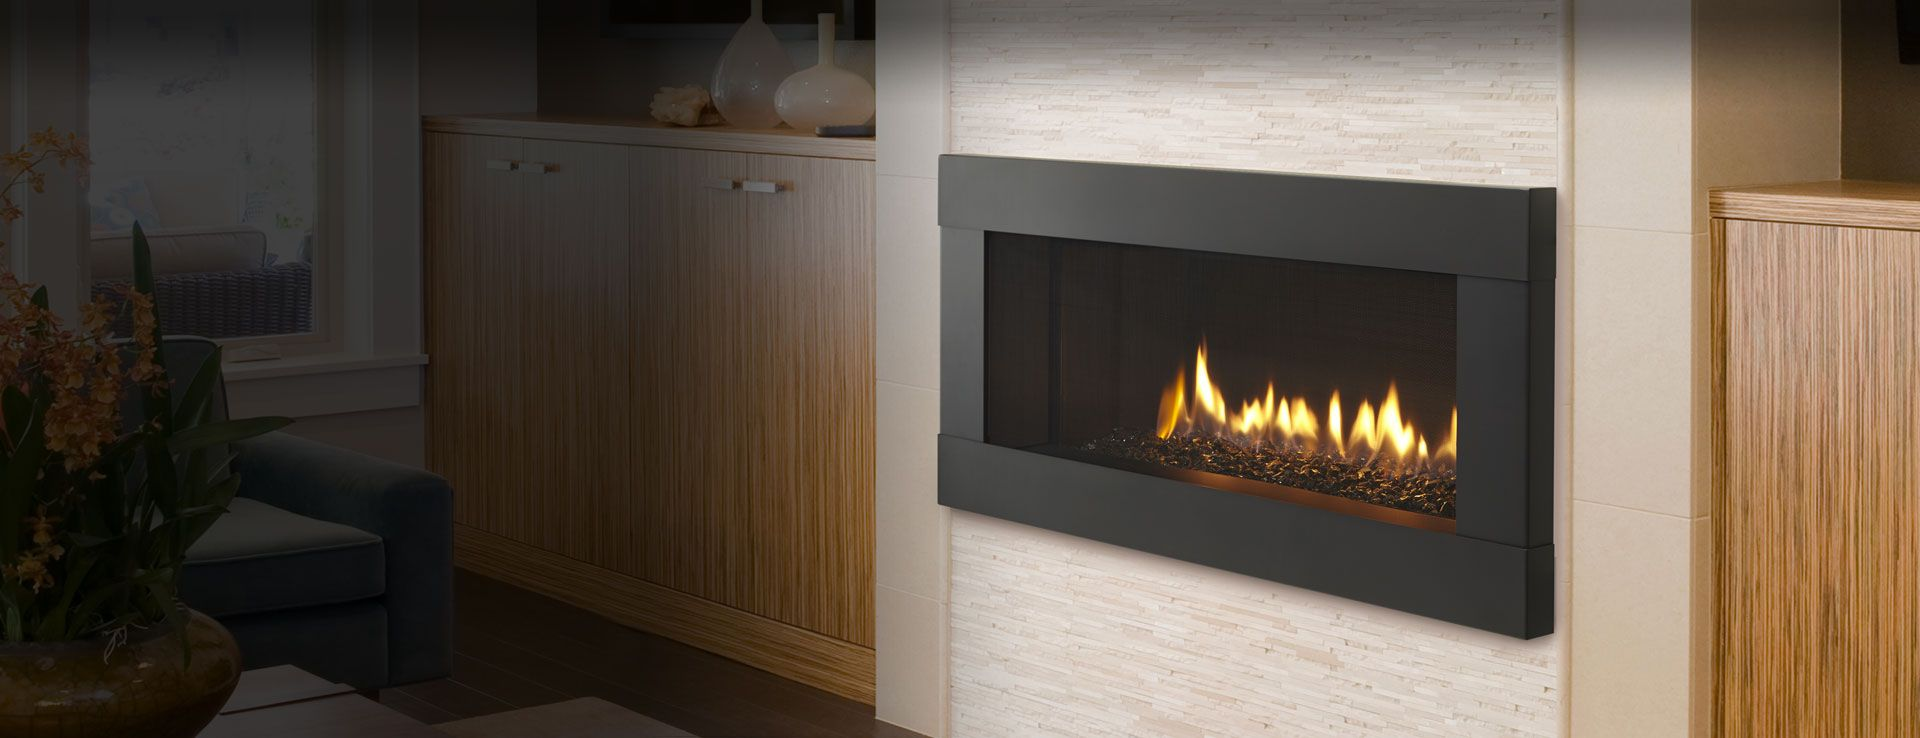 Image Result For Fireplace Heat Reflector